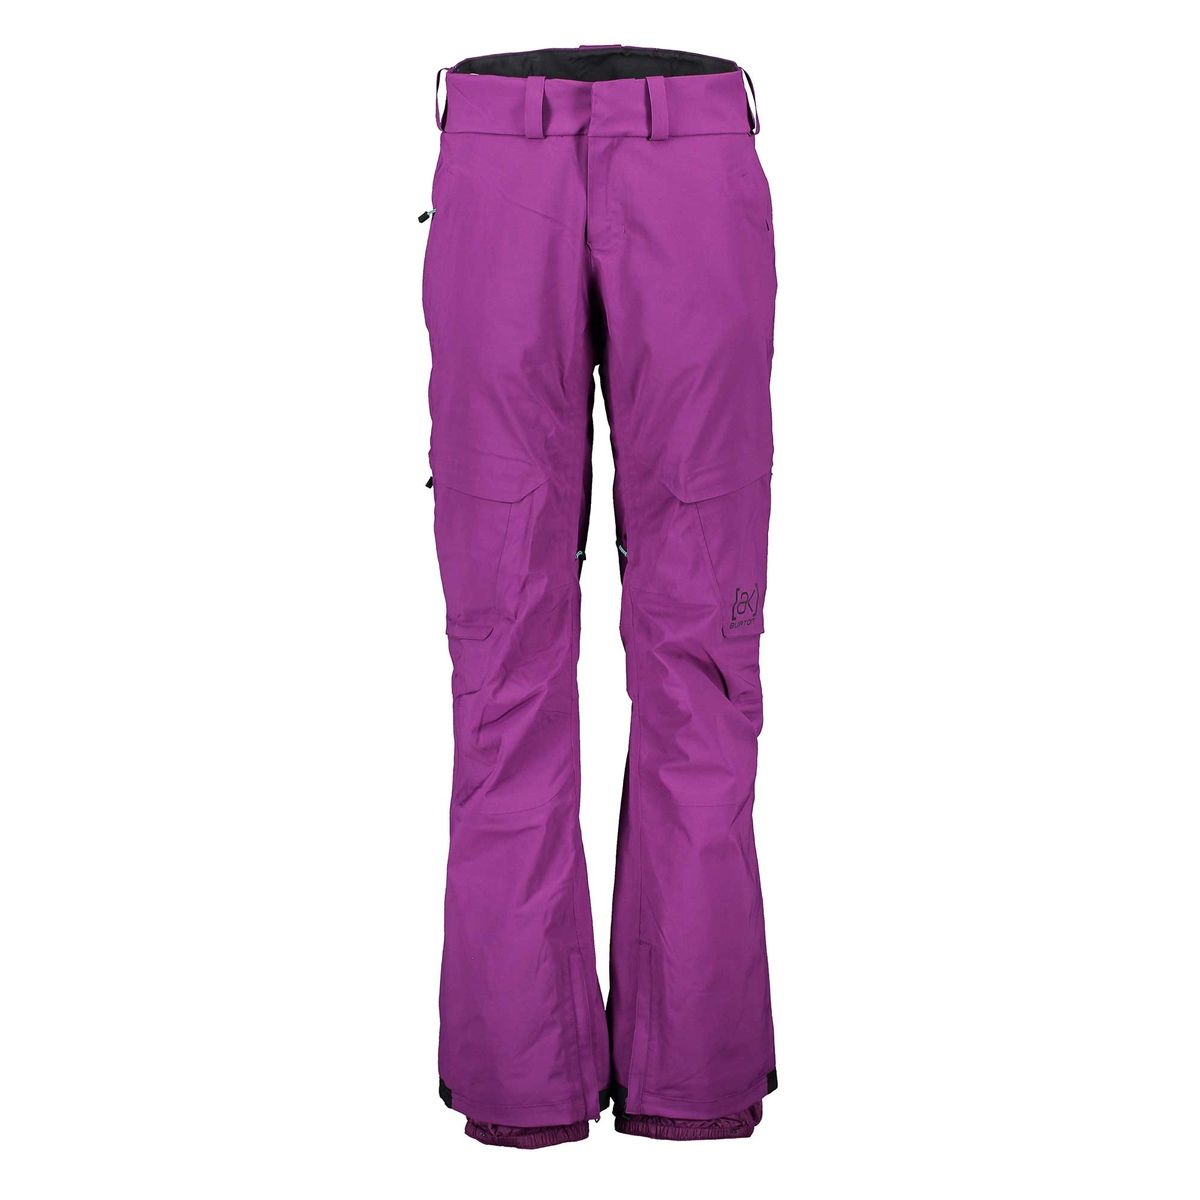 Prezzi Burton pantaloni ak summit insulated gore-tex donna